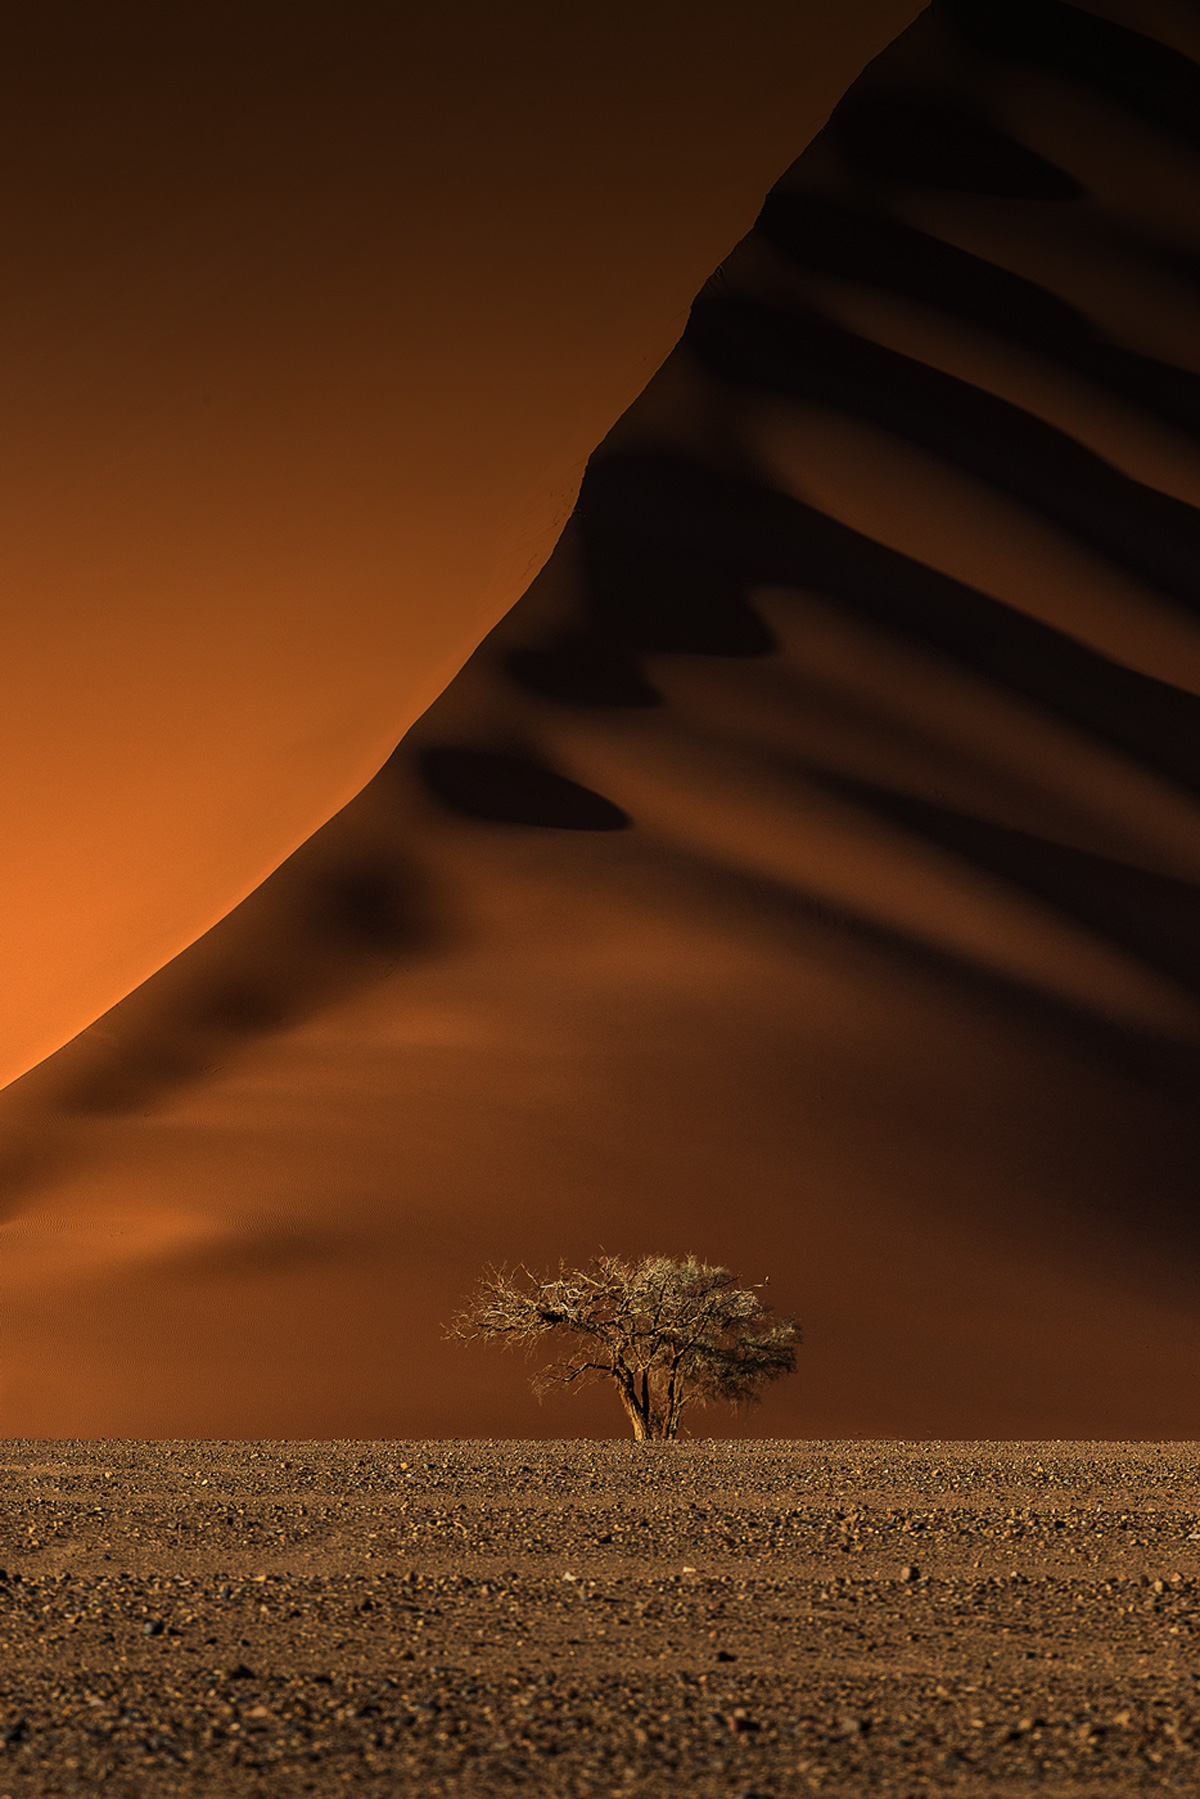 """Lone camelthorn"" – a lone camelthorn tree stands proudly in front of a massive red dune in the Tsauchab Valley, Namib-Naukluft Park, Namibia © Xenia Ivanoff-Erb"